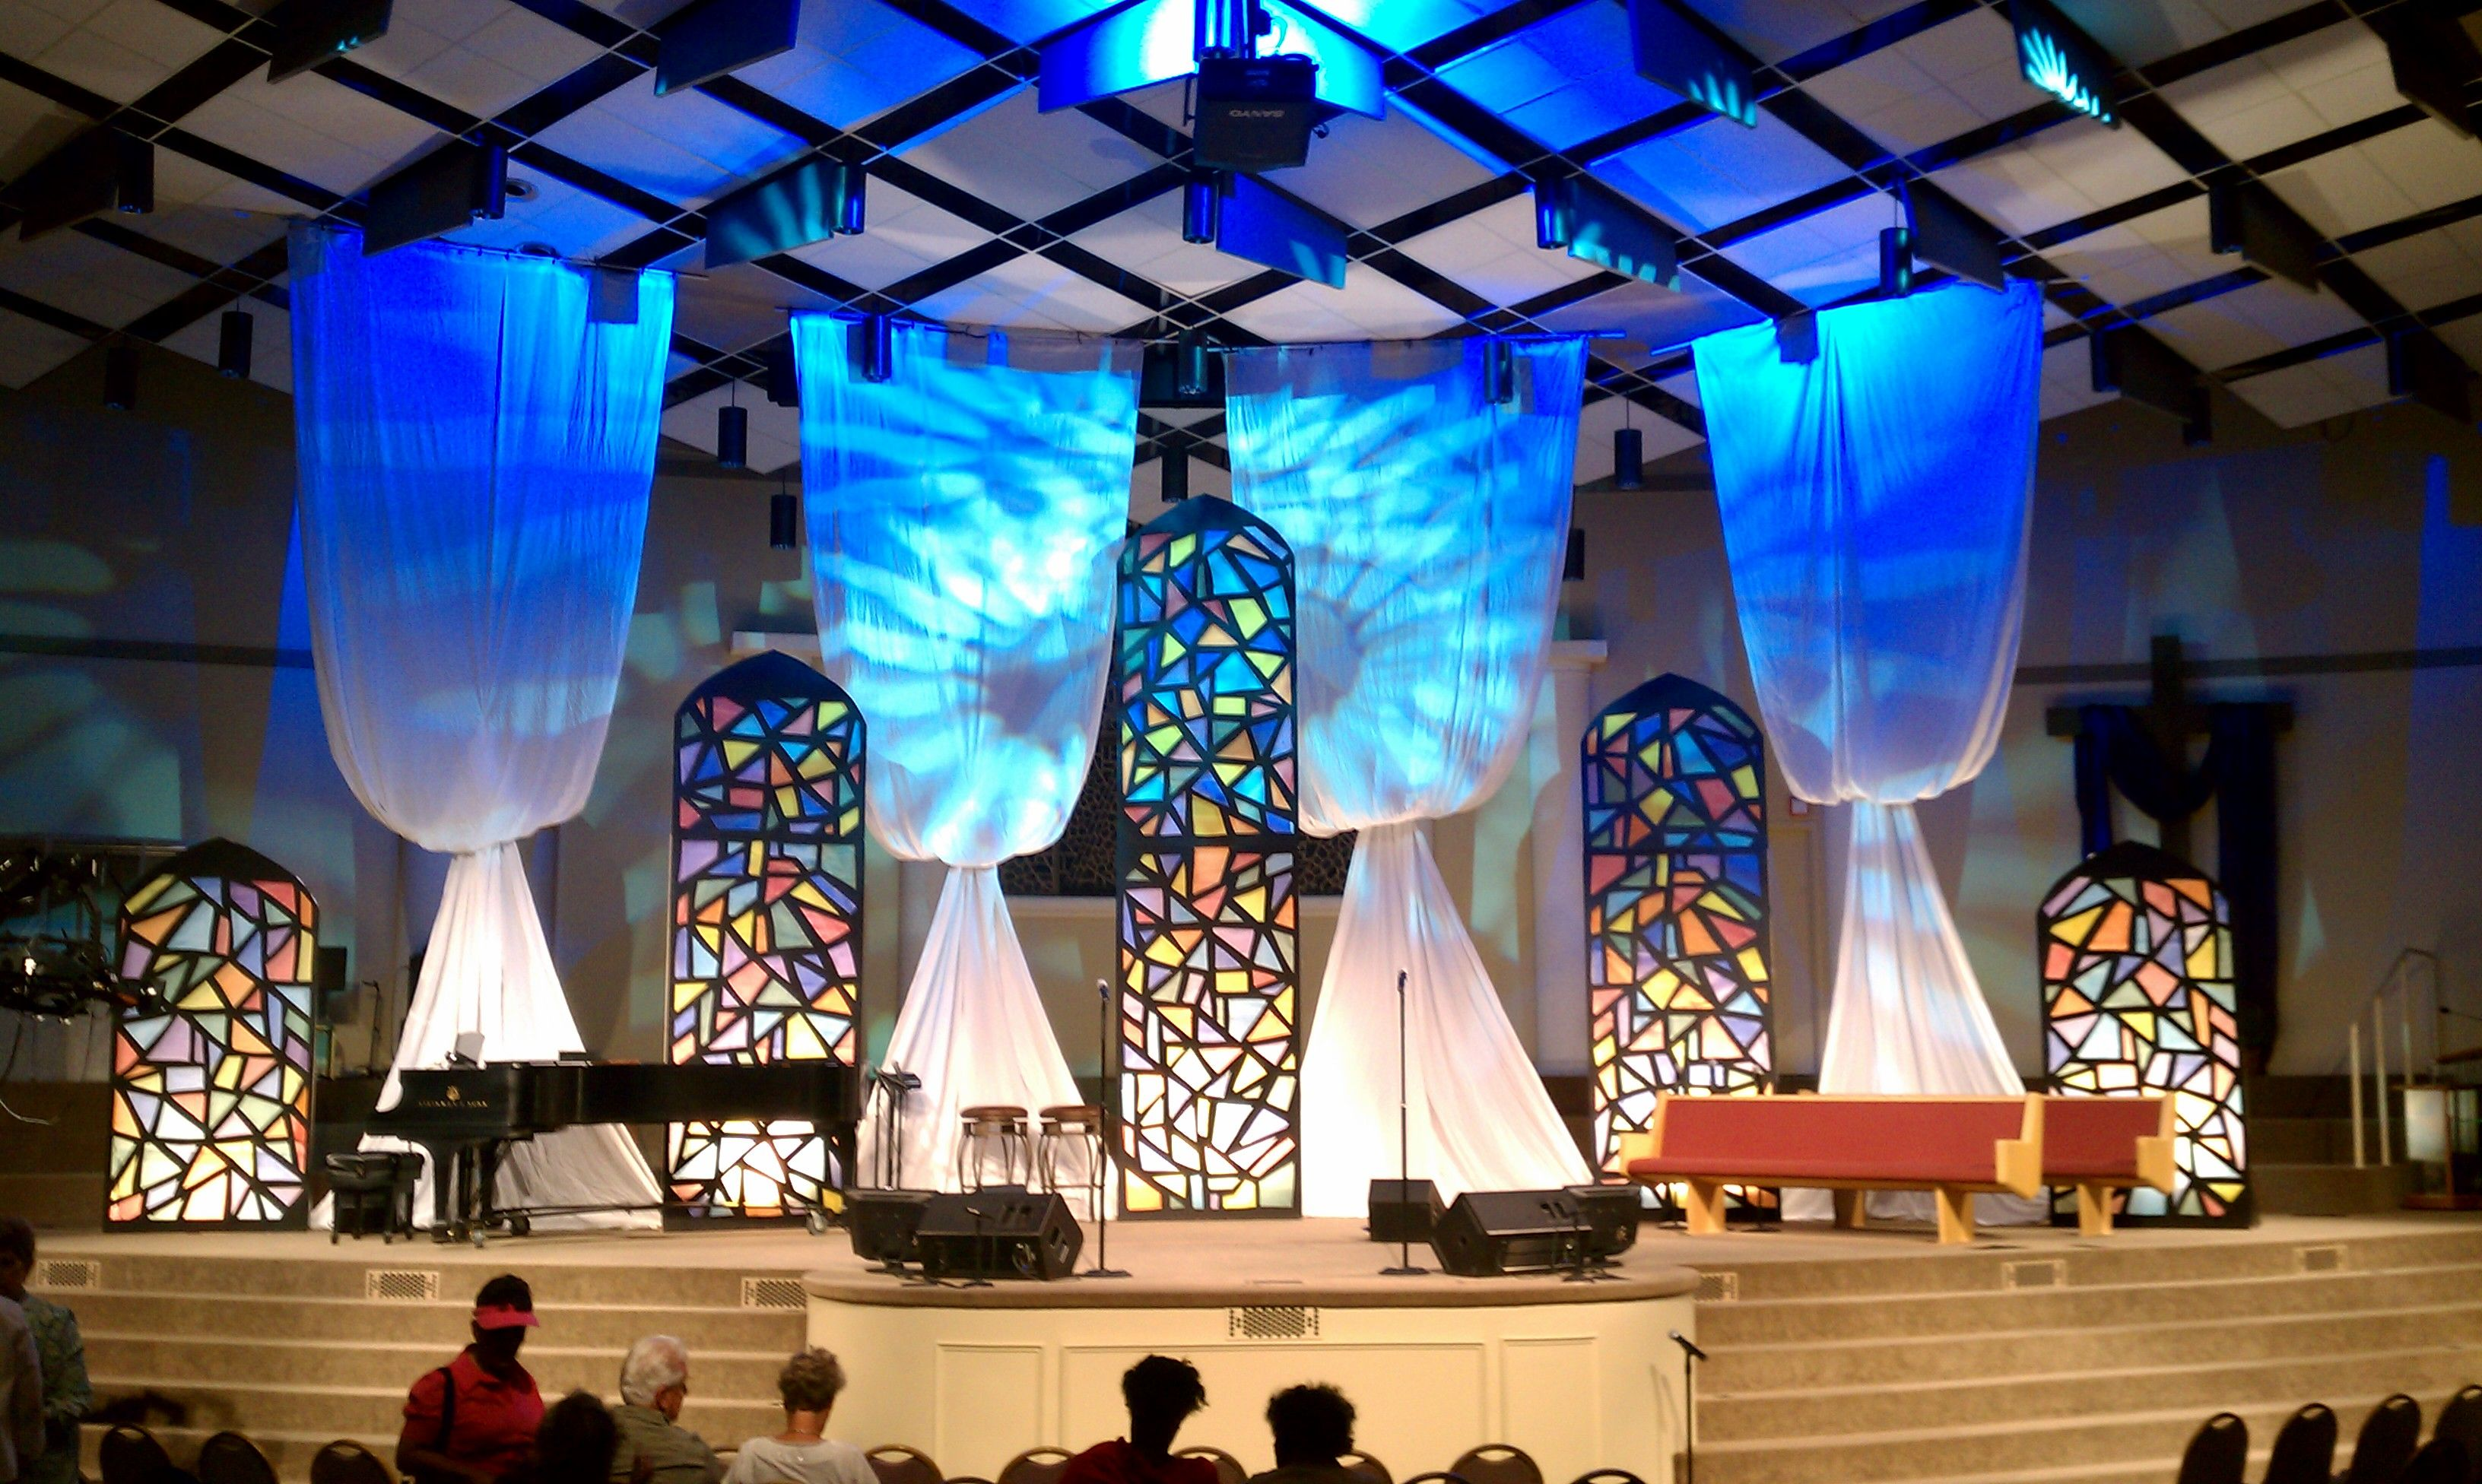 17 best images about church on pinterest youth ministry backdrops and church stage design - Church Interior Design Ideas